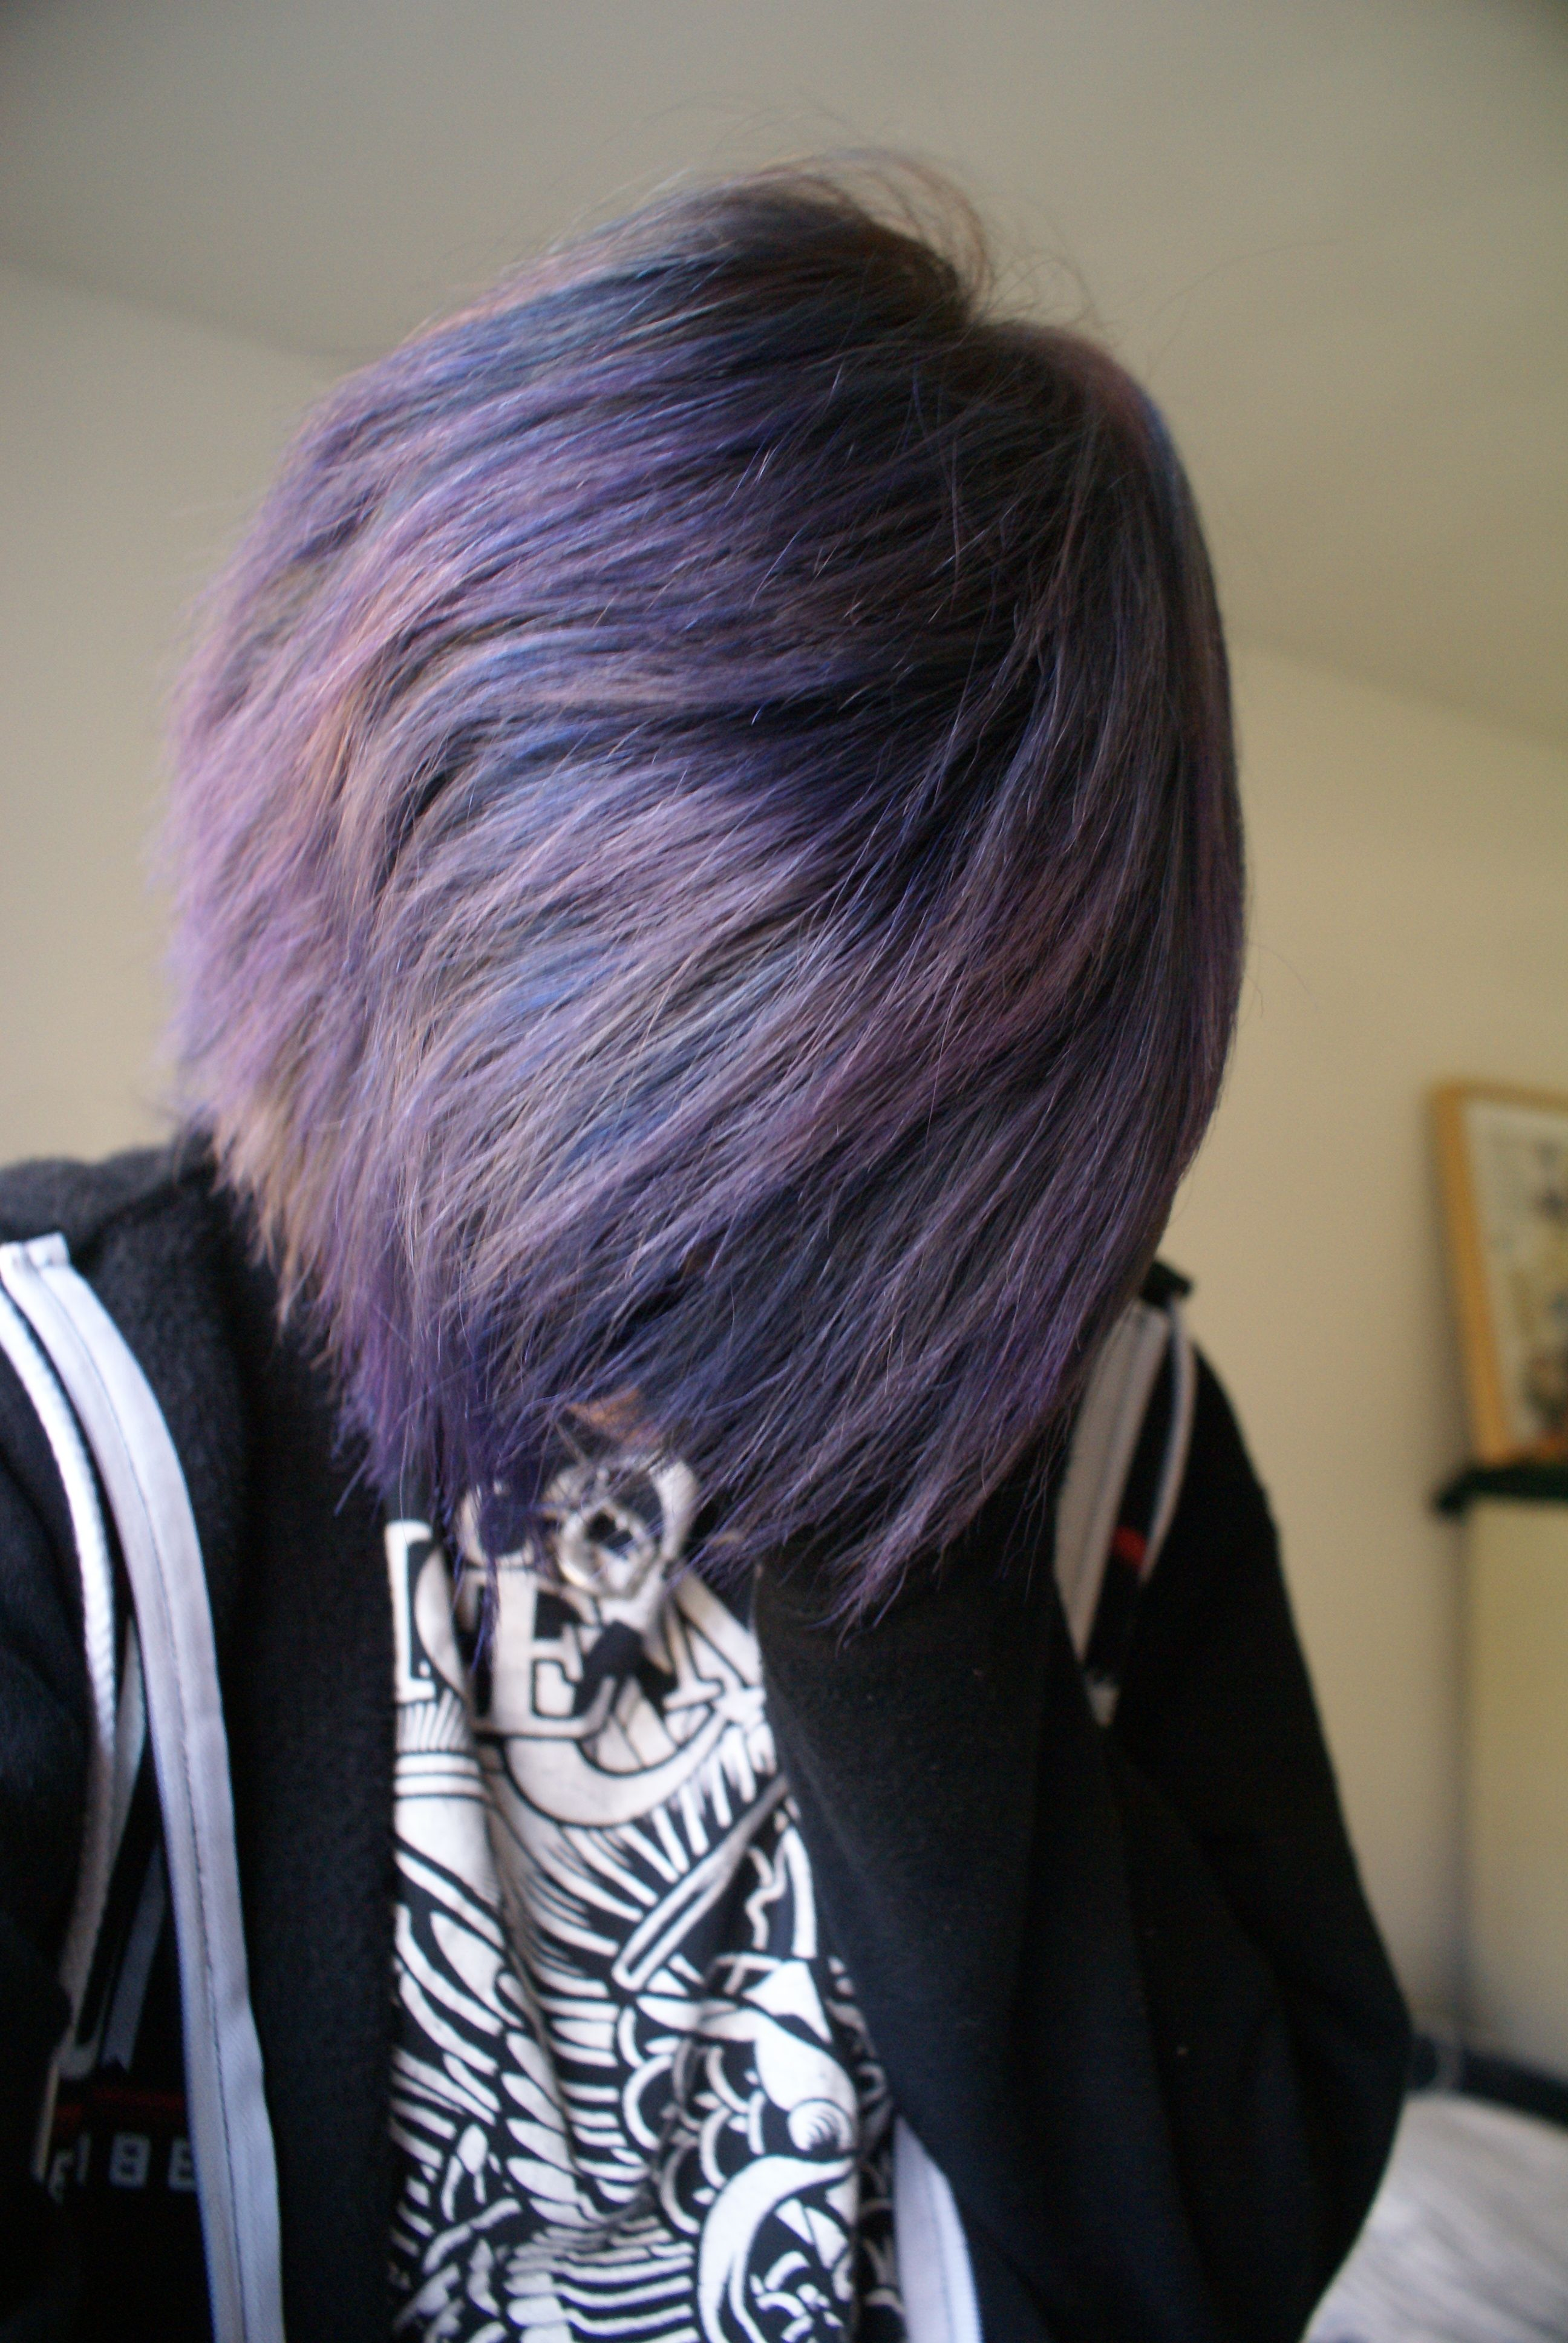 Purple hair dye boy pin by iliveunderyourbed on awesome hair  pinterest  hair hair